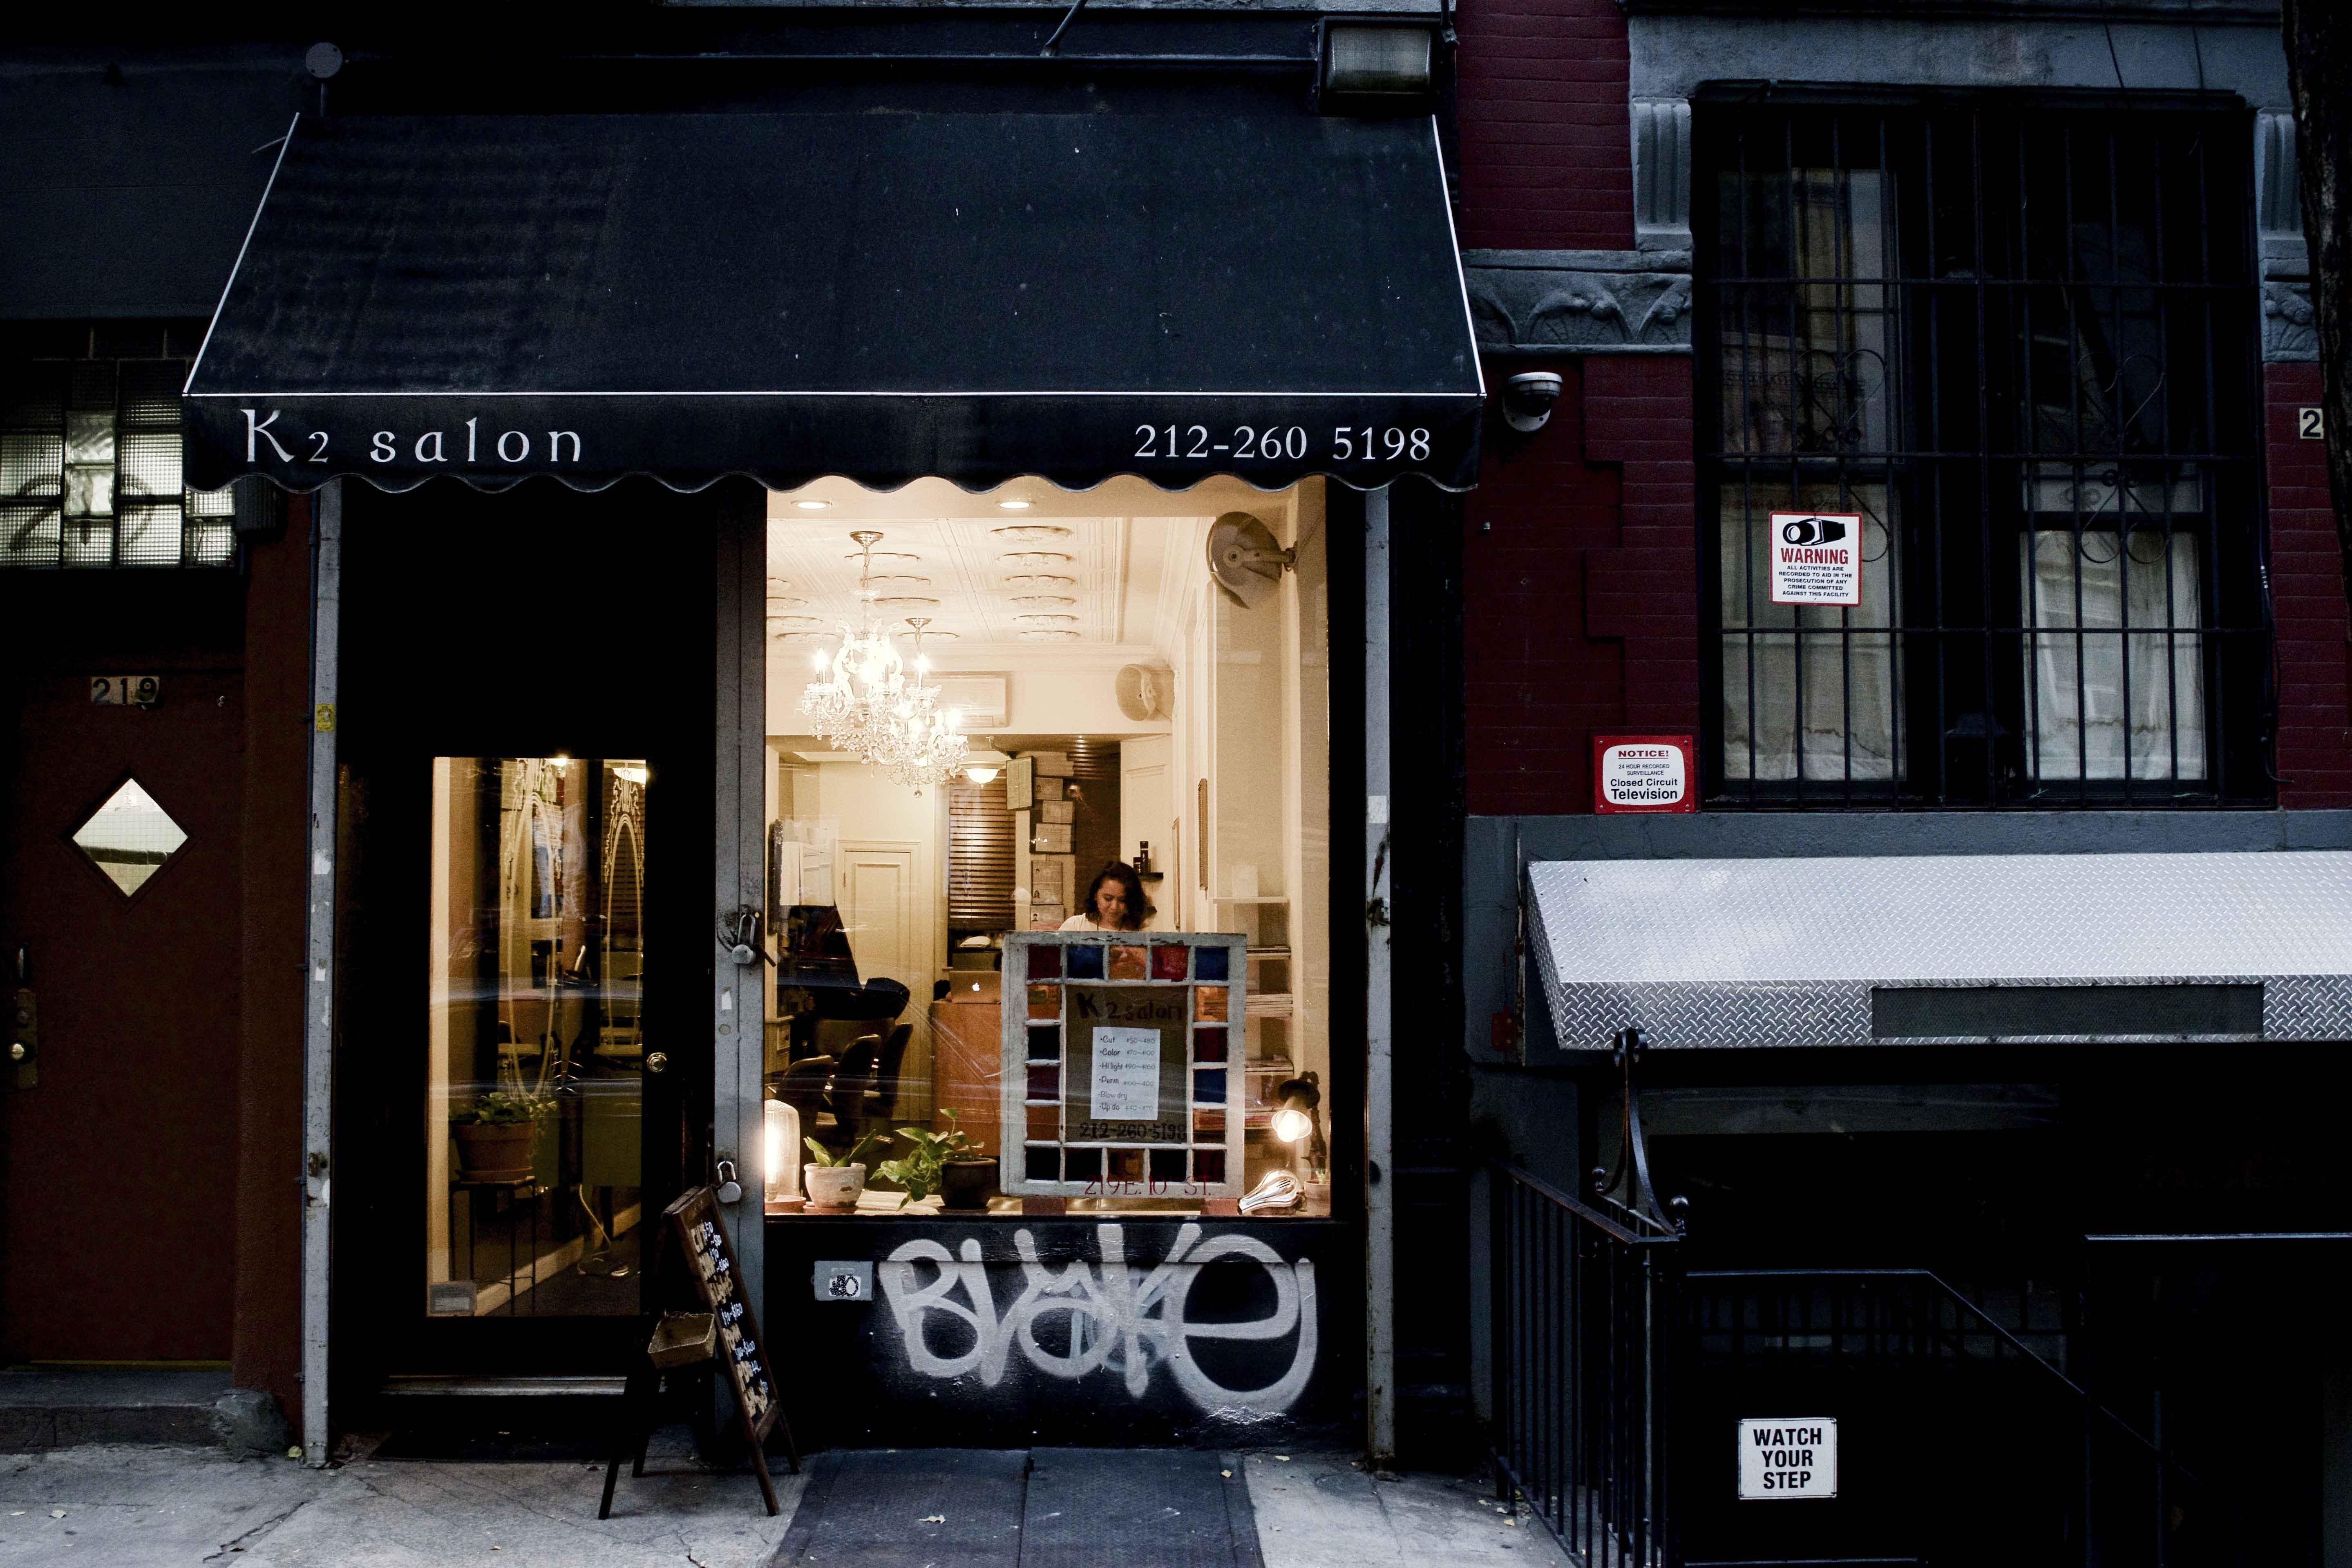 K2 Salon is a small but trendy hair salon in the East Village located at 227 E 10th St.